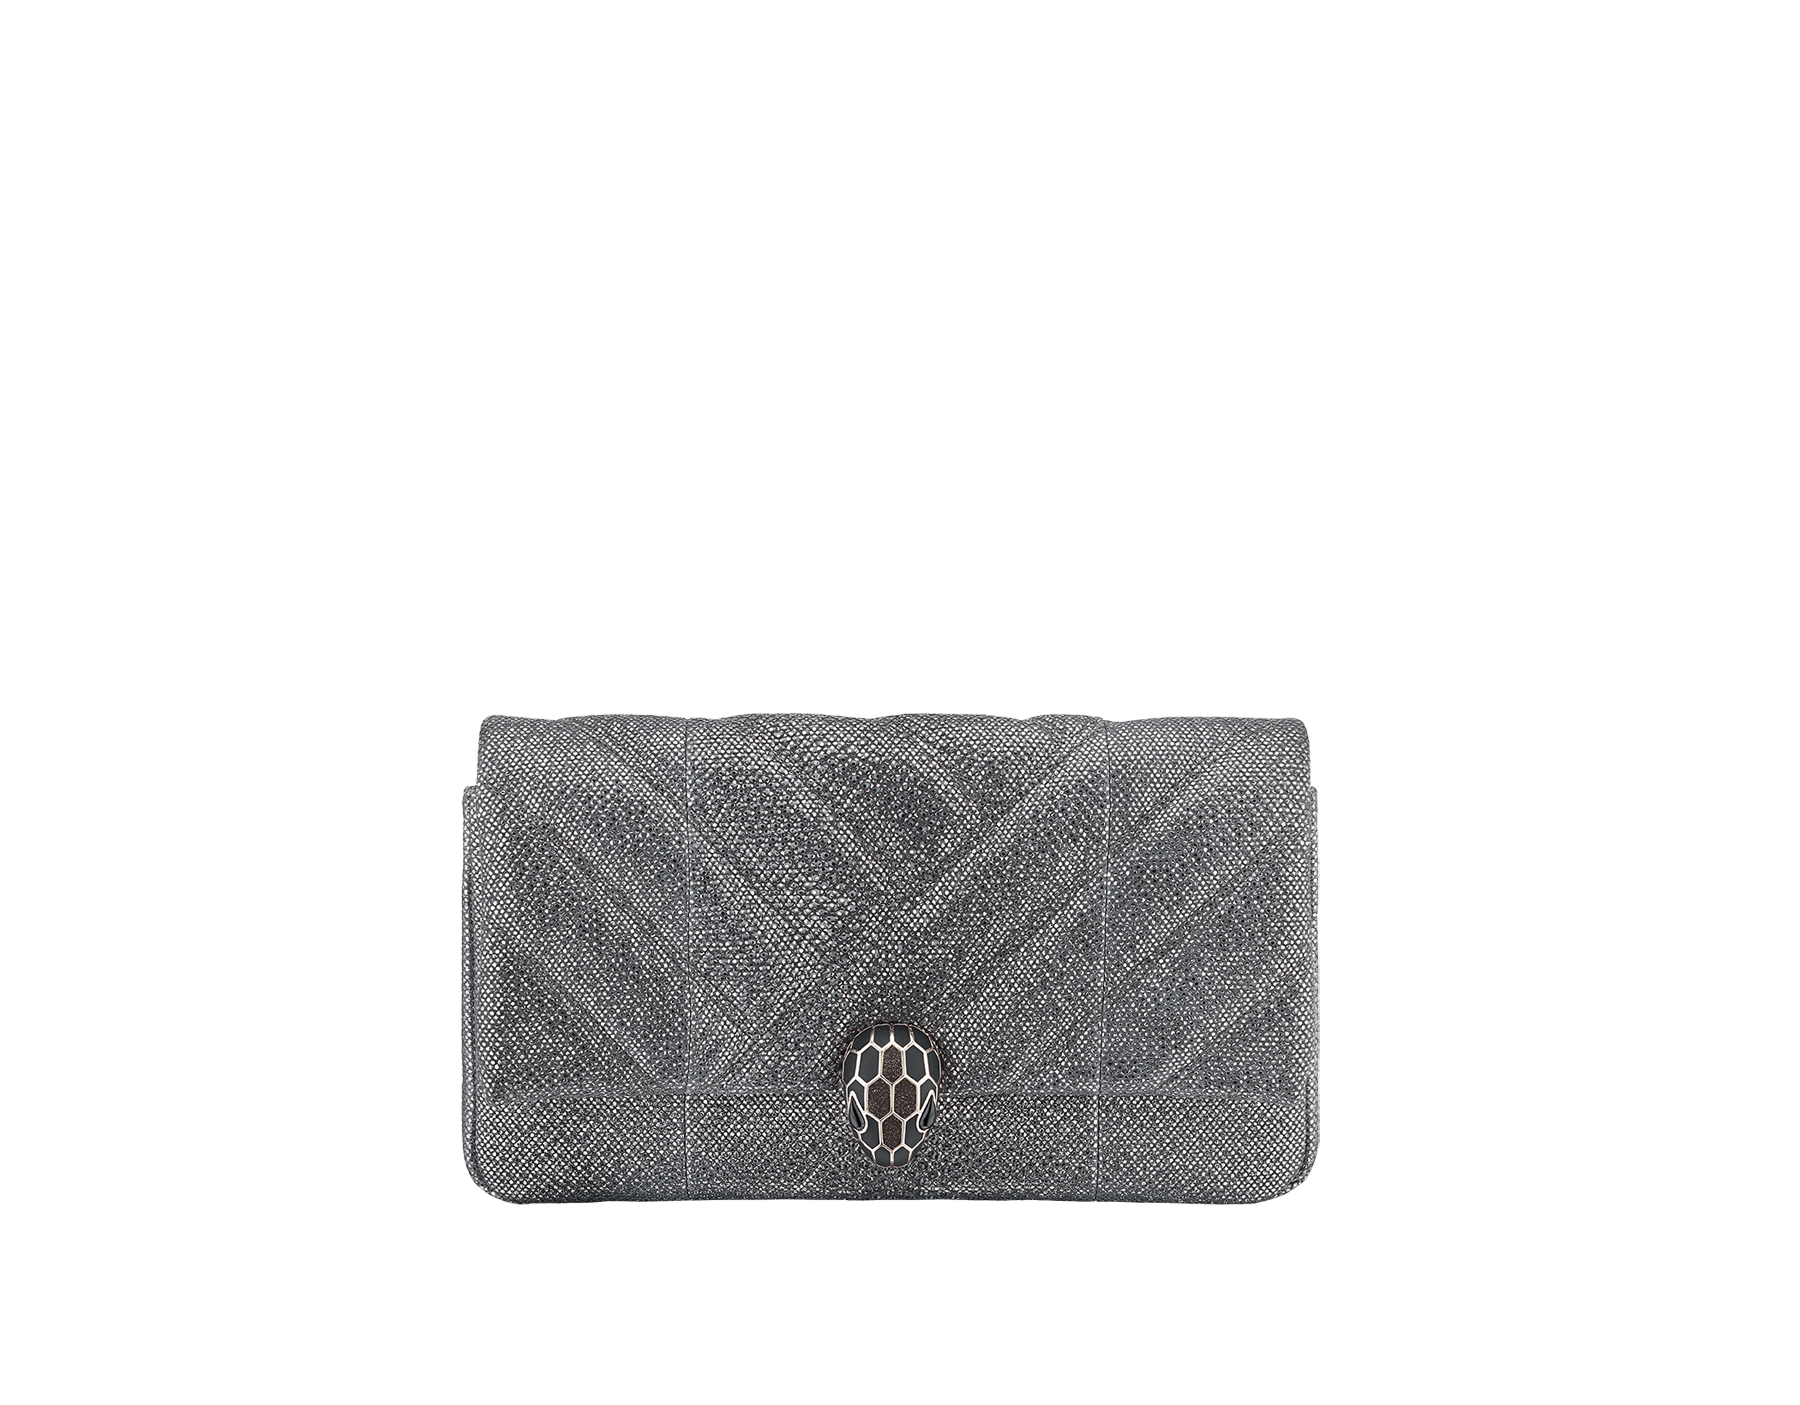 Serpenti Cabochon clutch bag in milky opal metallic karung skin, with a graphic motif. Brass light gold plated tempting snake head closure in black and glitter milky opal enamel and black onyx eyes. 1025-MK image 1